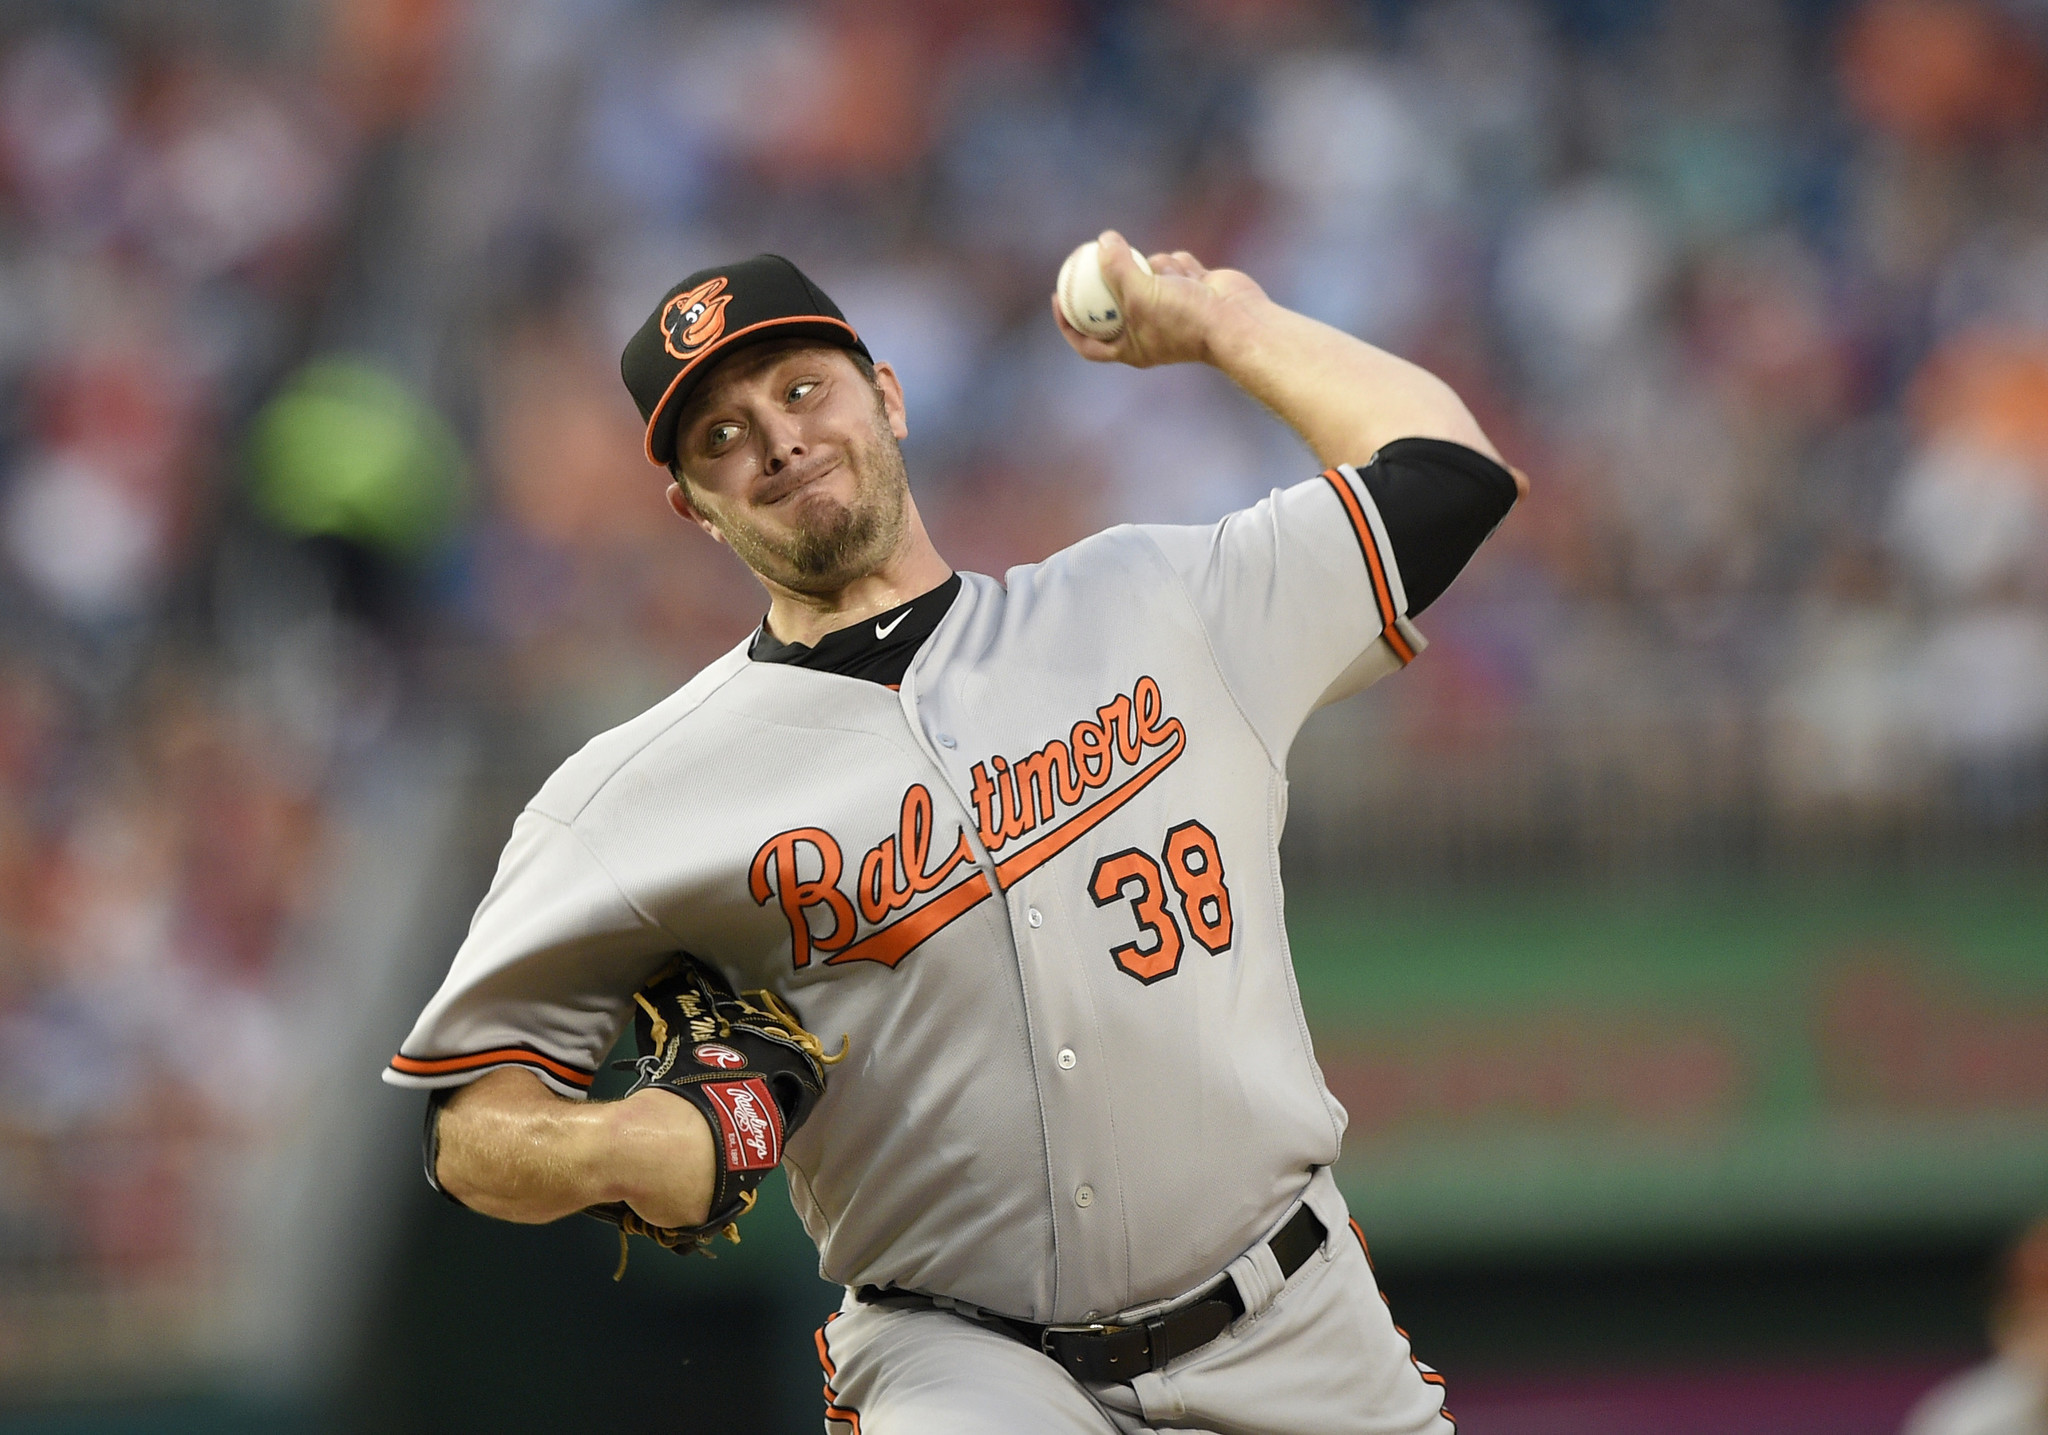 Bal-orioles-wade-miley-provides-solid-start-at-time-of-need-in-win-over-nationals-20160824